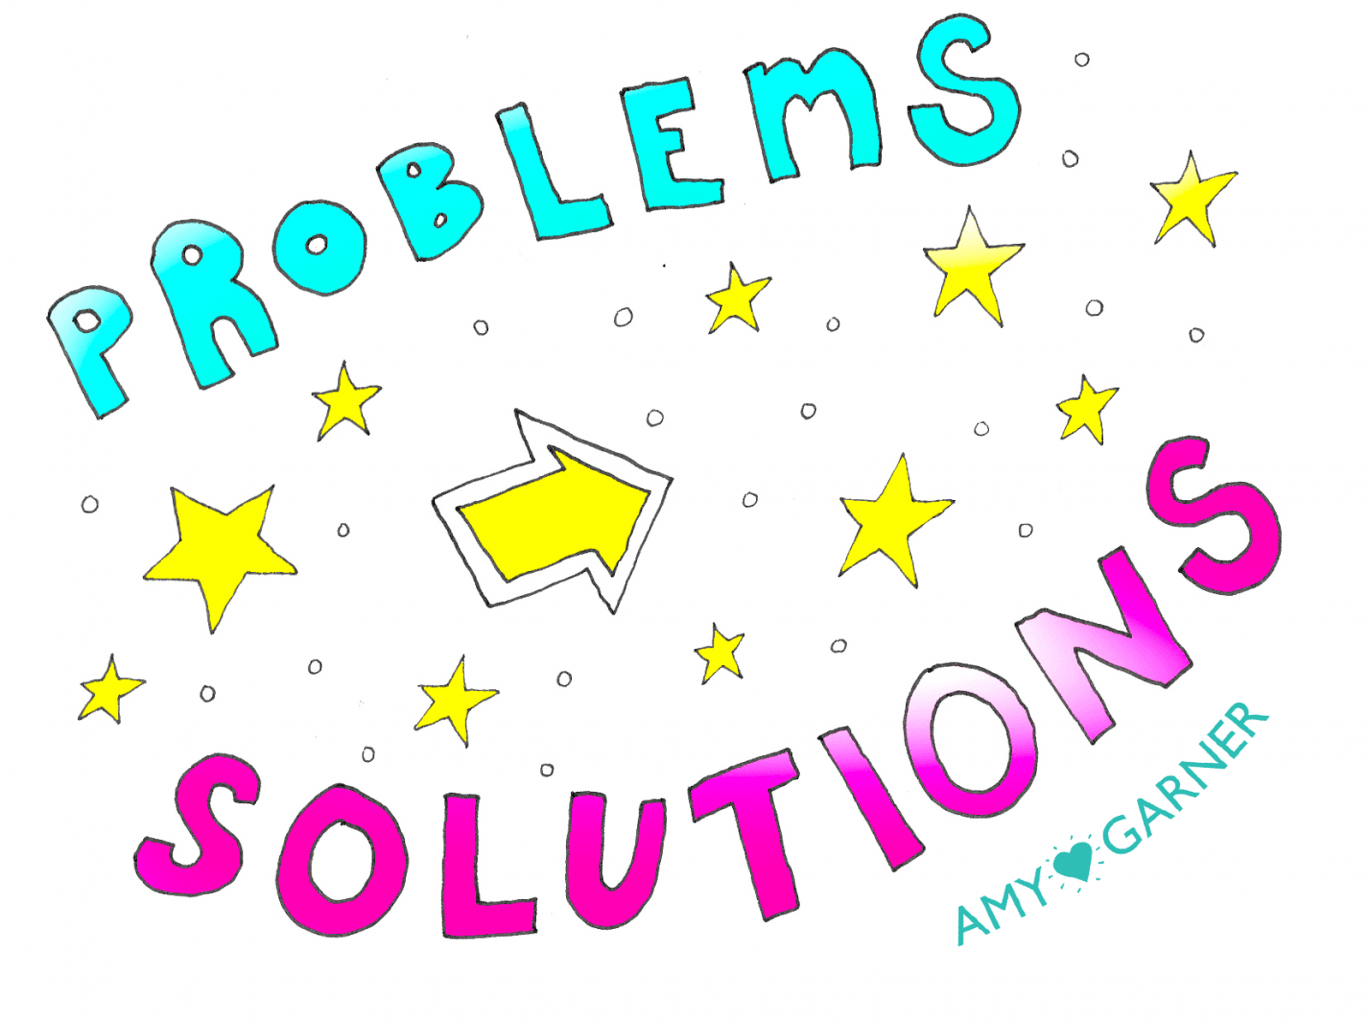 A highly sensitive person in business can turn problems into solutions